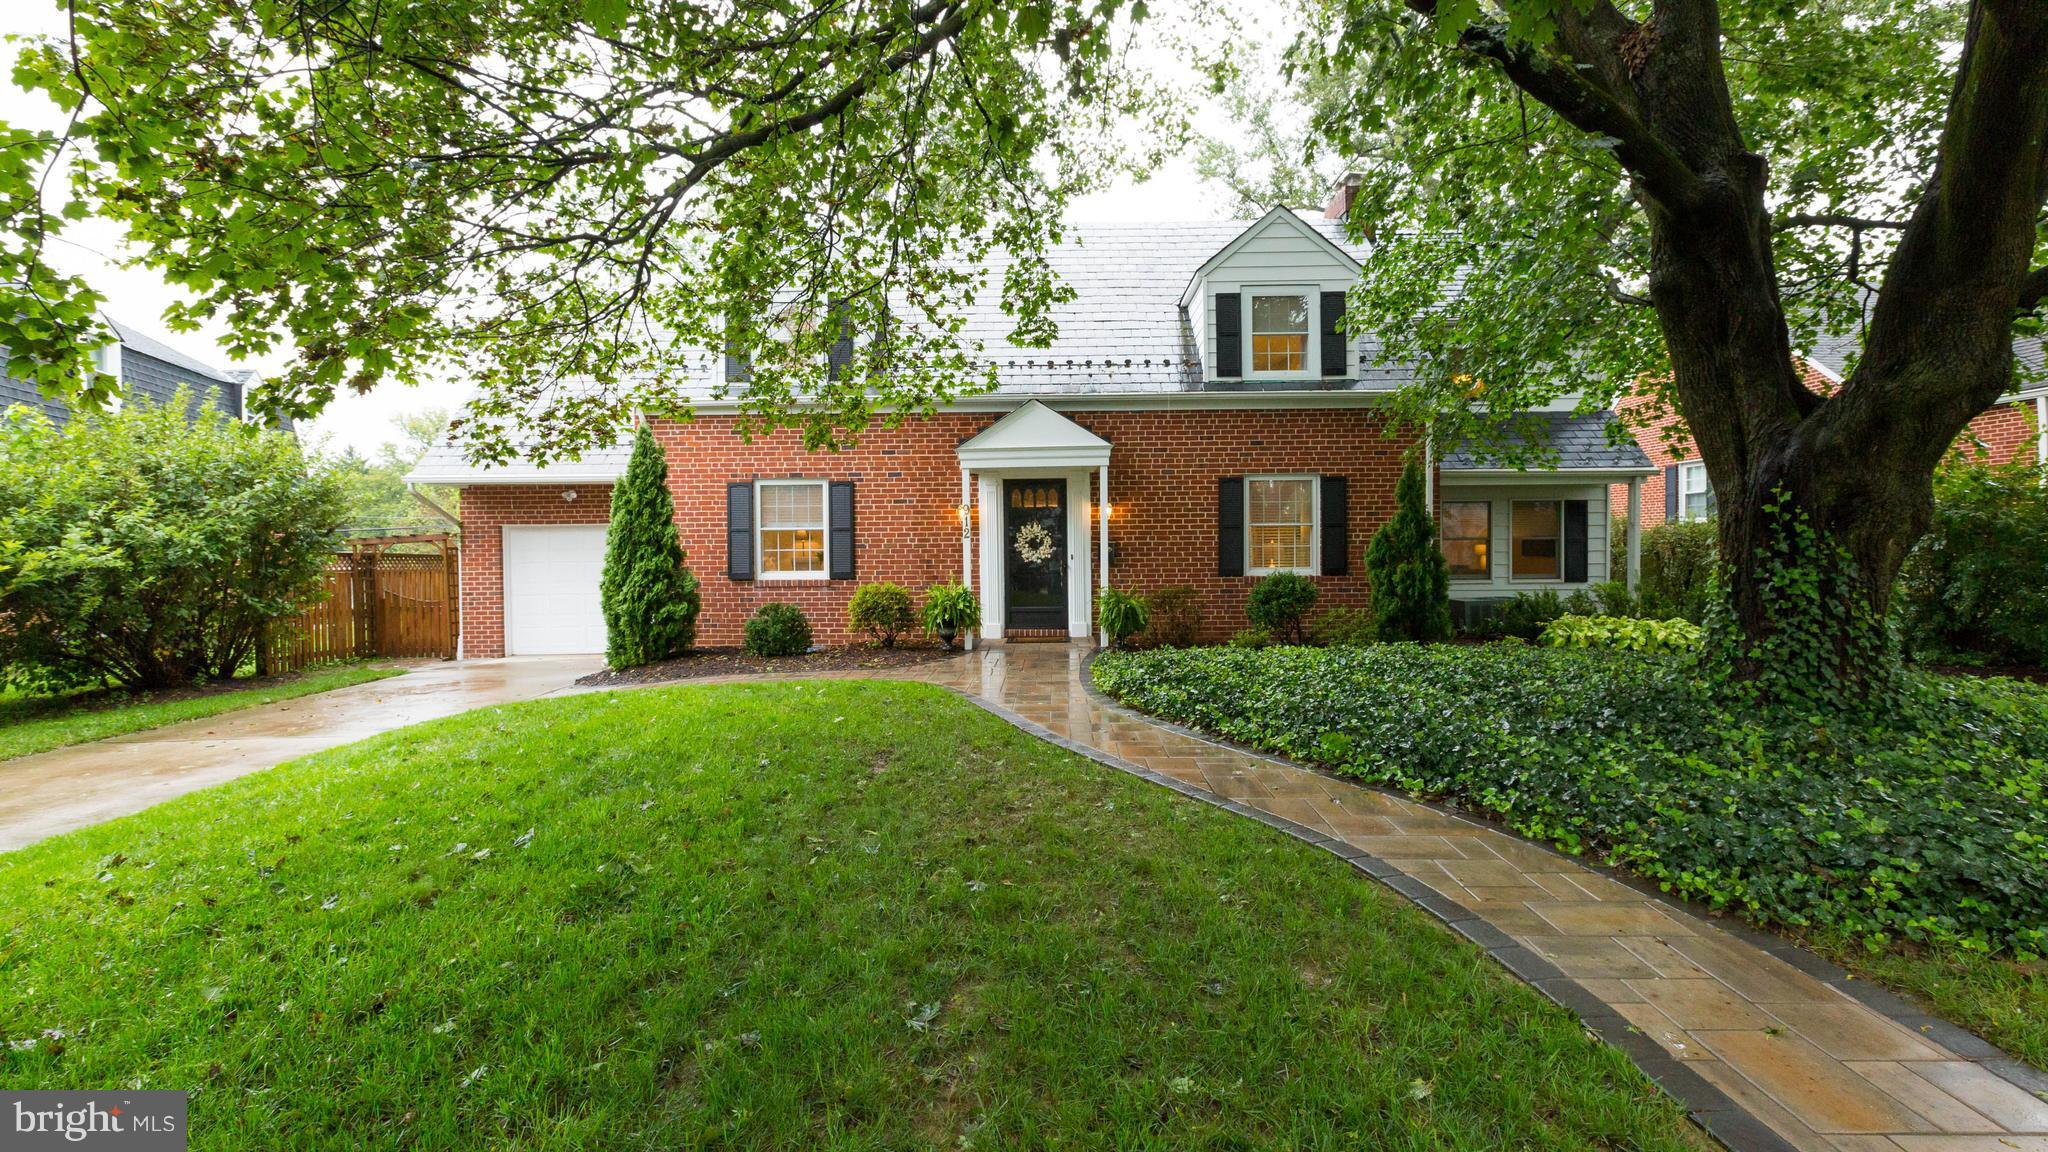 TRULY IMPRESSIVE PROPERTY IN TOWSONS RODGERS FORGE SUMMIT NEIGHBORHD! CLASSIC BRICK/SLATE CAPE W/ALL